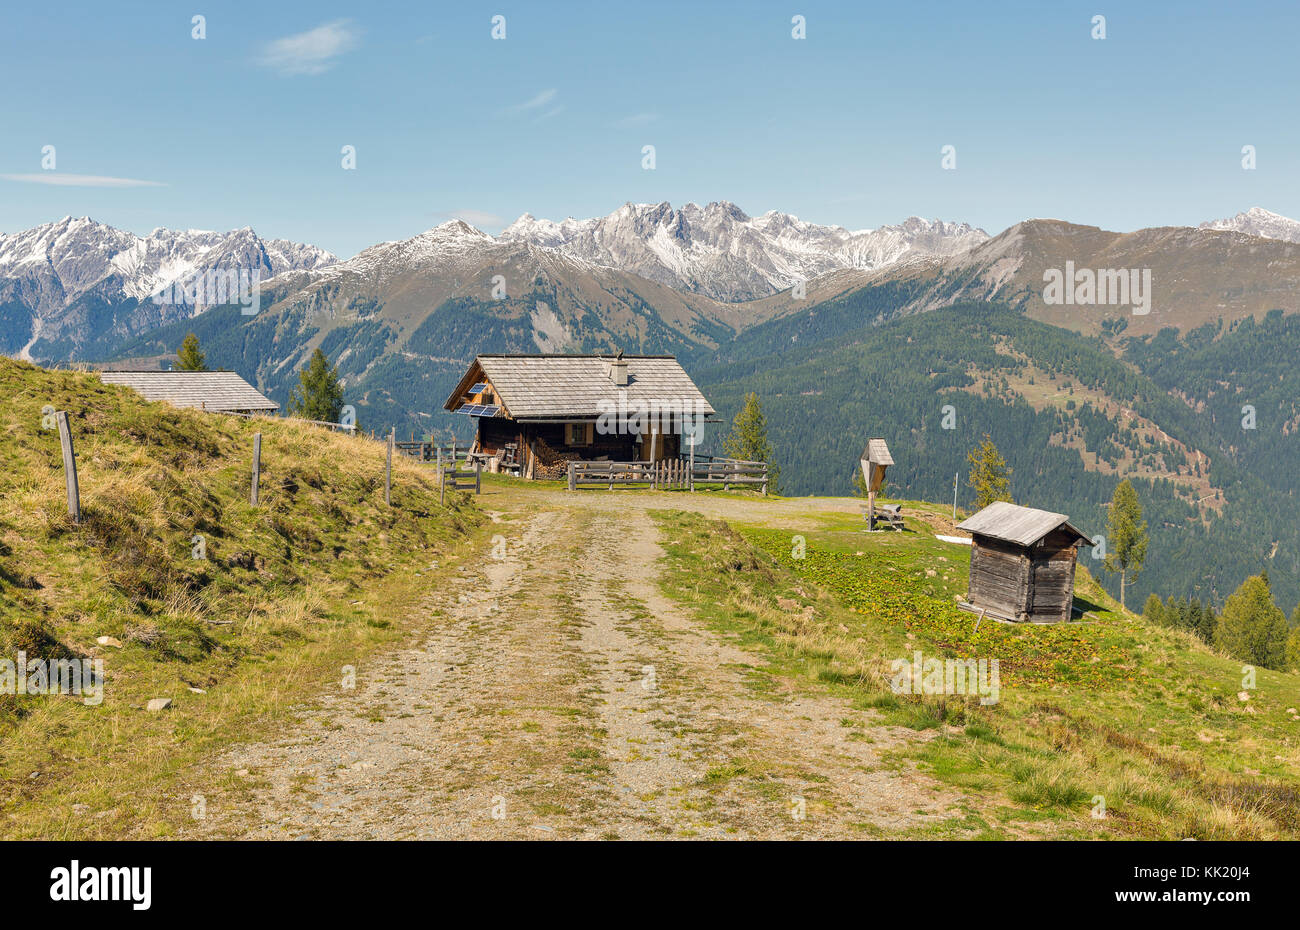 Wooden shepherd lodge on a highland pasture with Alpine mountain landscape in Western Carinthia, Austria. Stock Photo